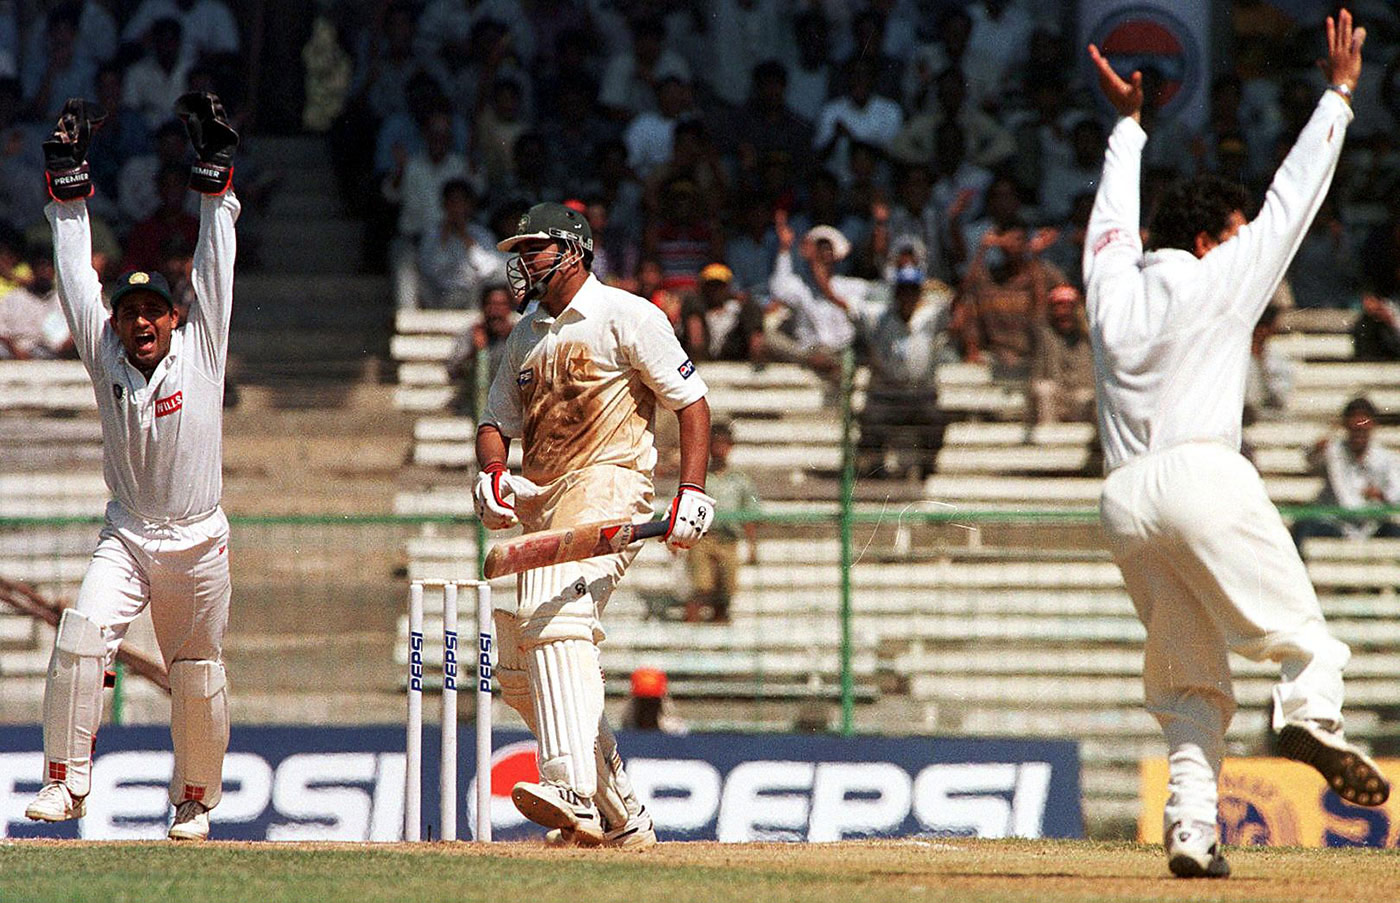 Tendulkar, the Man of the Match, also took three wickets in the game, including Inzamam-ul-Haq in the second innings